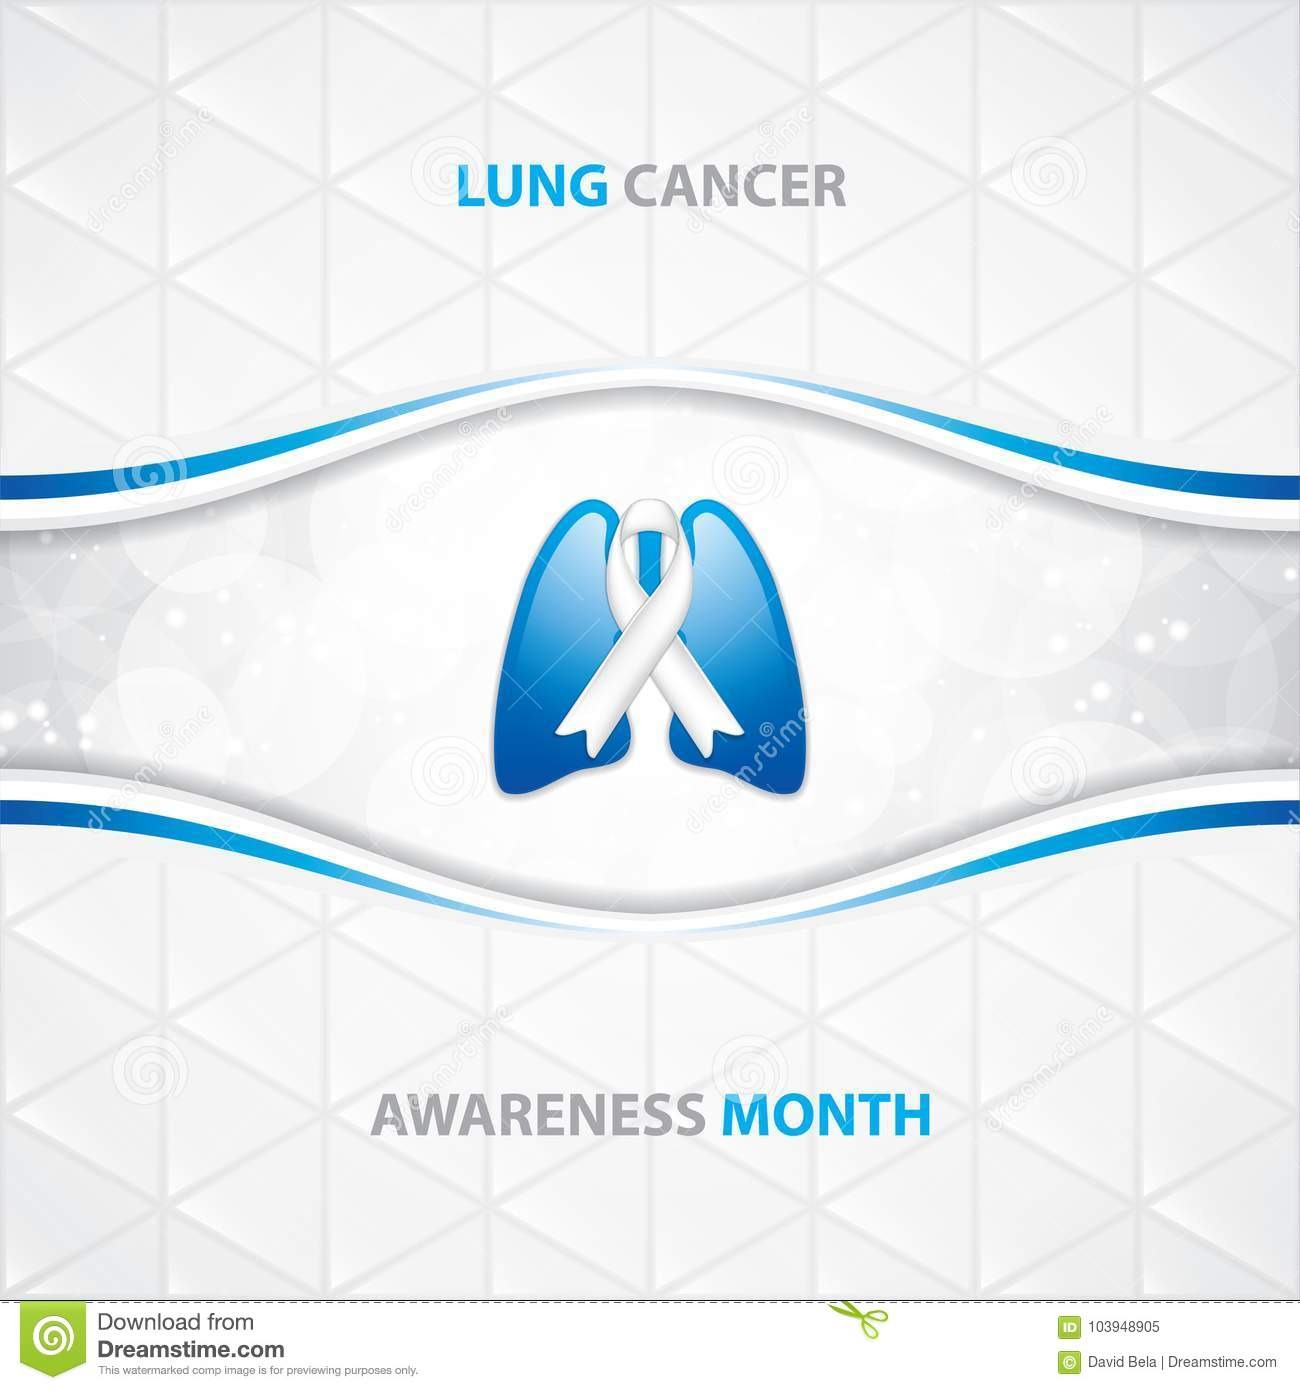 Lung Cancer Awareness Month Background